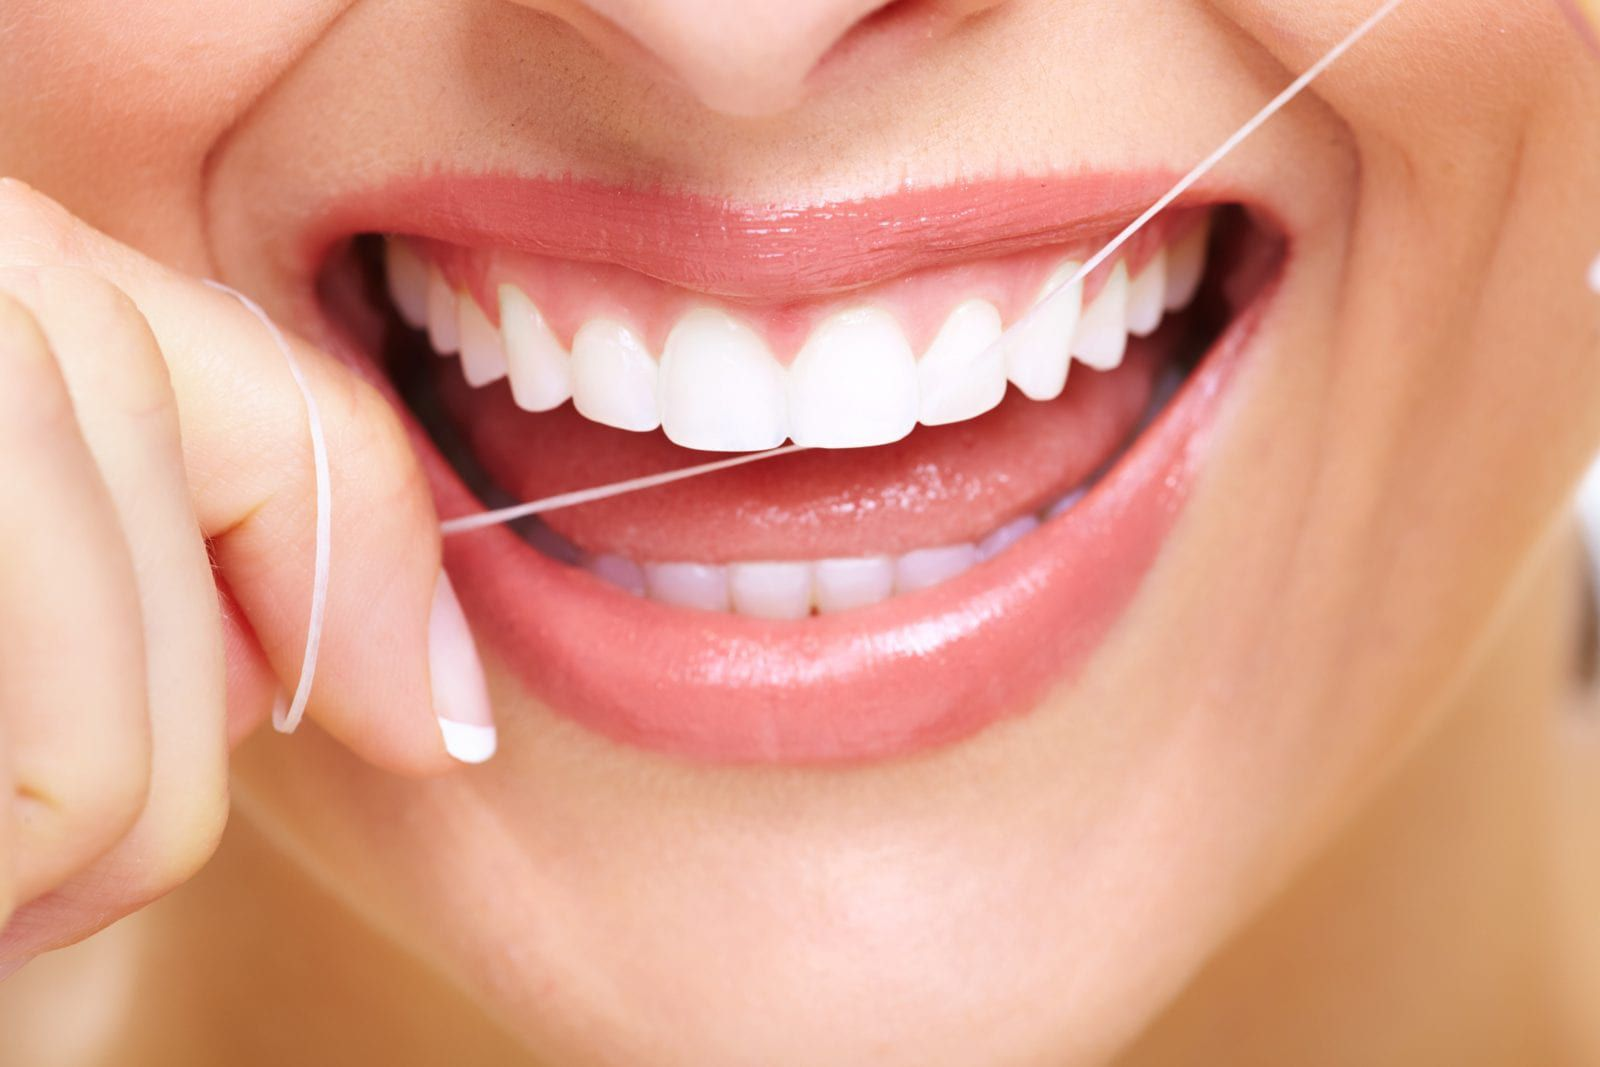 Woman with straight teeth flossing